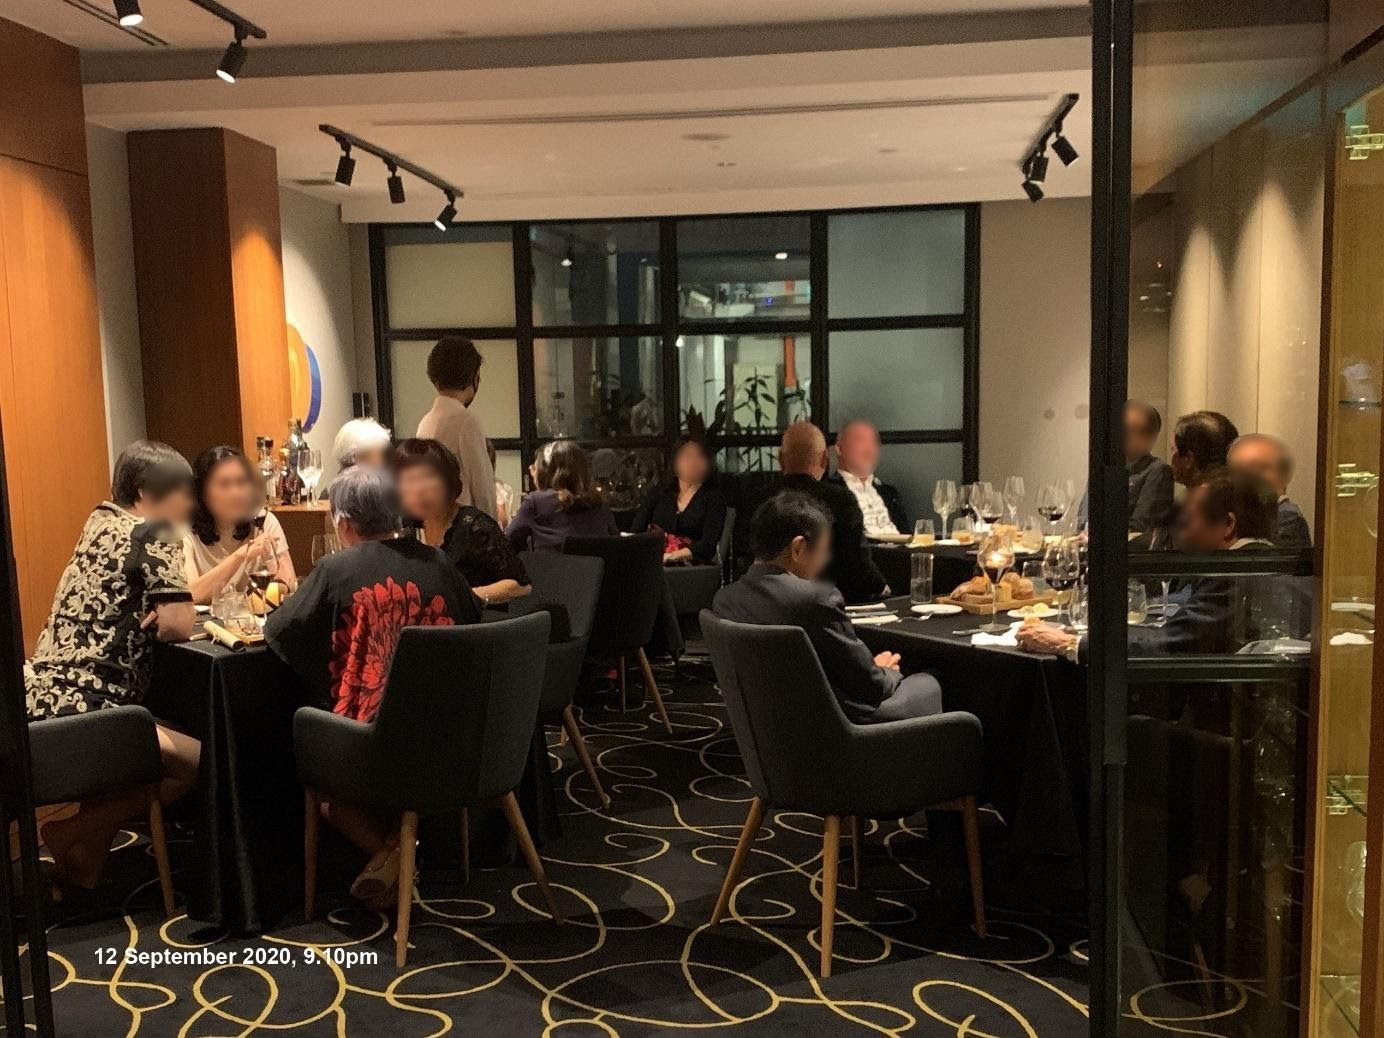 15 individuals found inside the restaurant at 39 Hong Kong Street seated across four tables and intermingling on 12 September 2020. Photo courtesy: Urban Redevelopment Authority